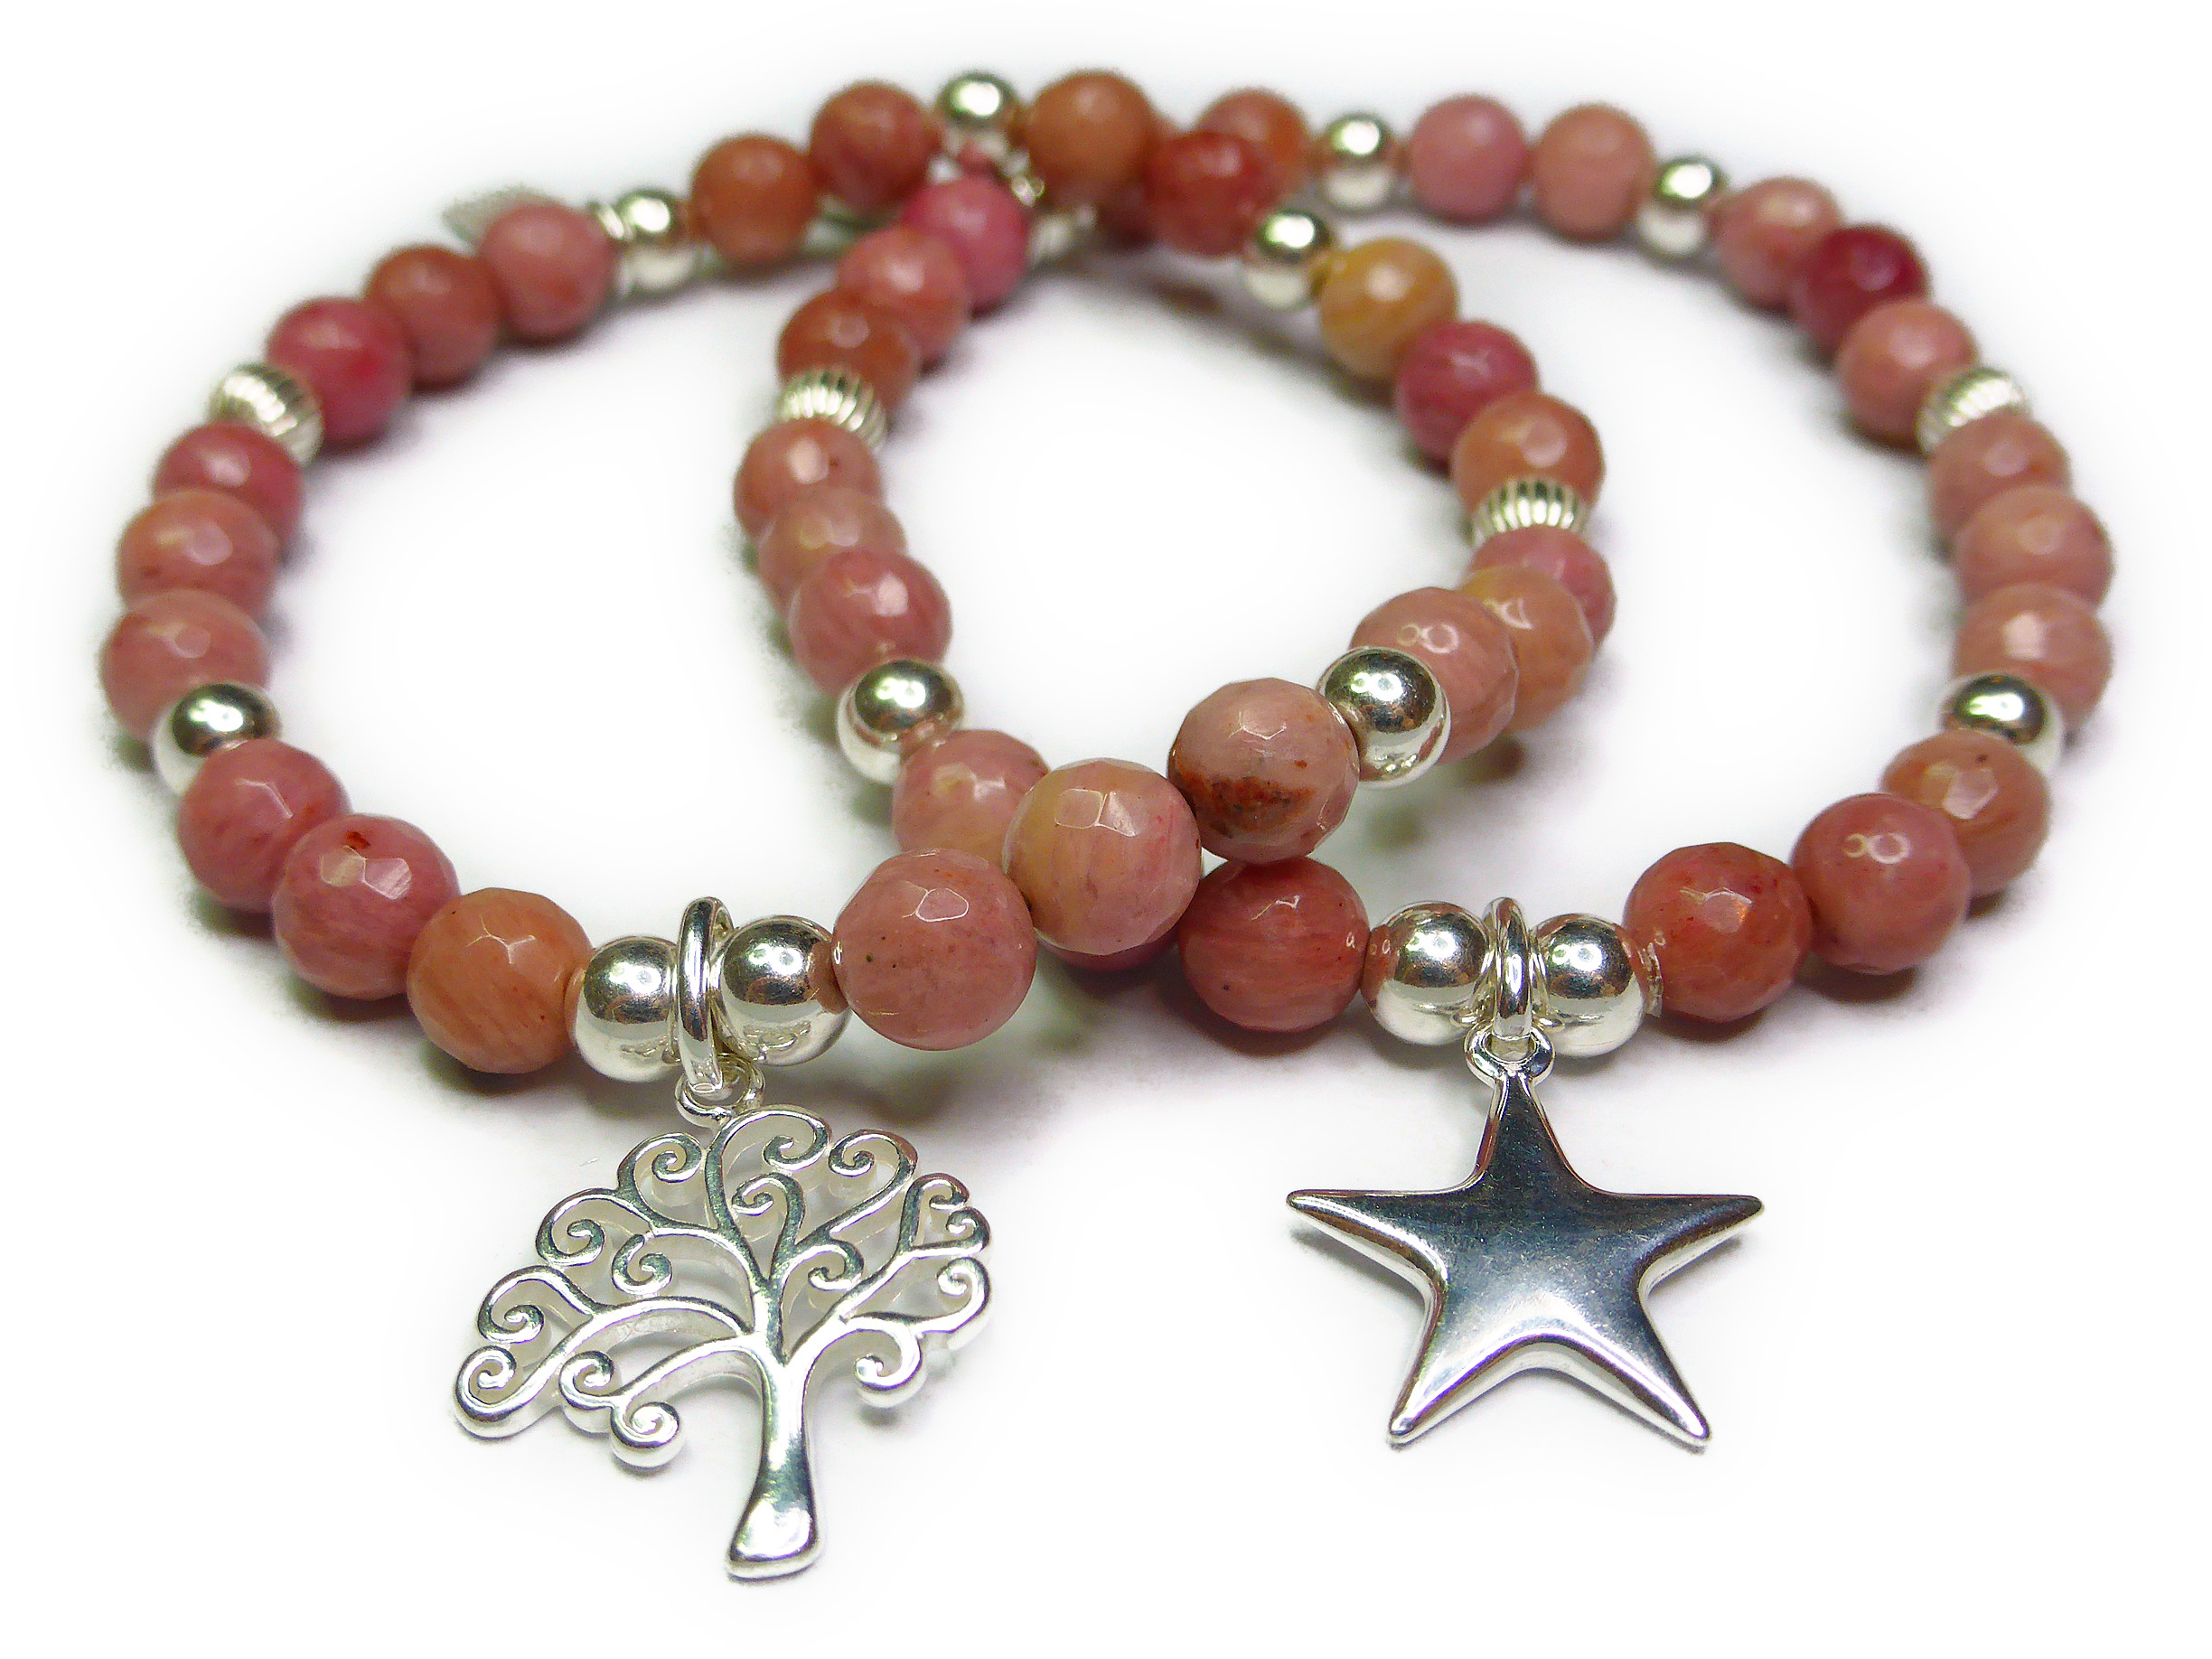 Rhodonite Bracelets from the Moonstorm Collection by Jacy & Jools